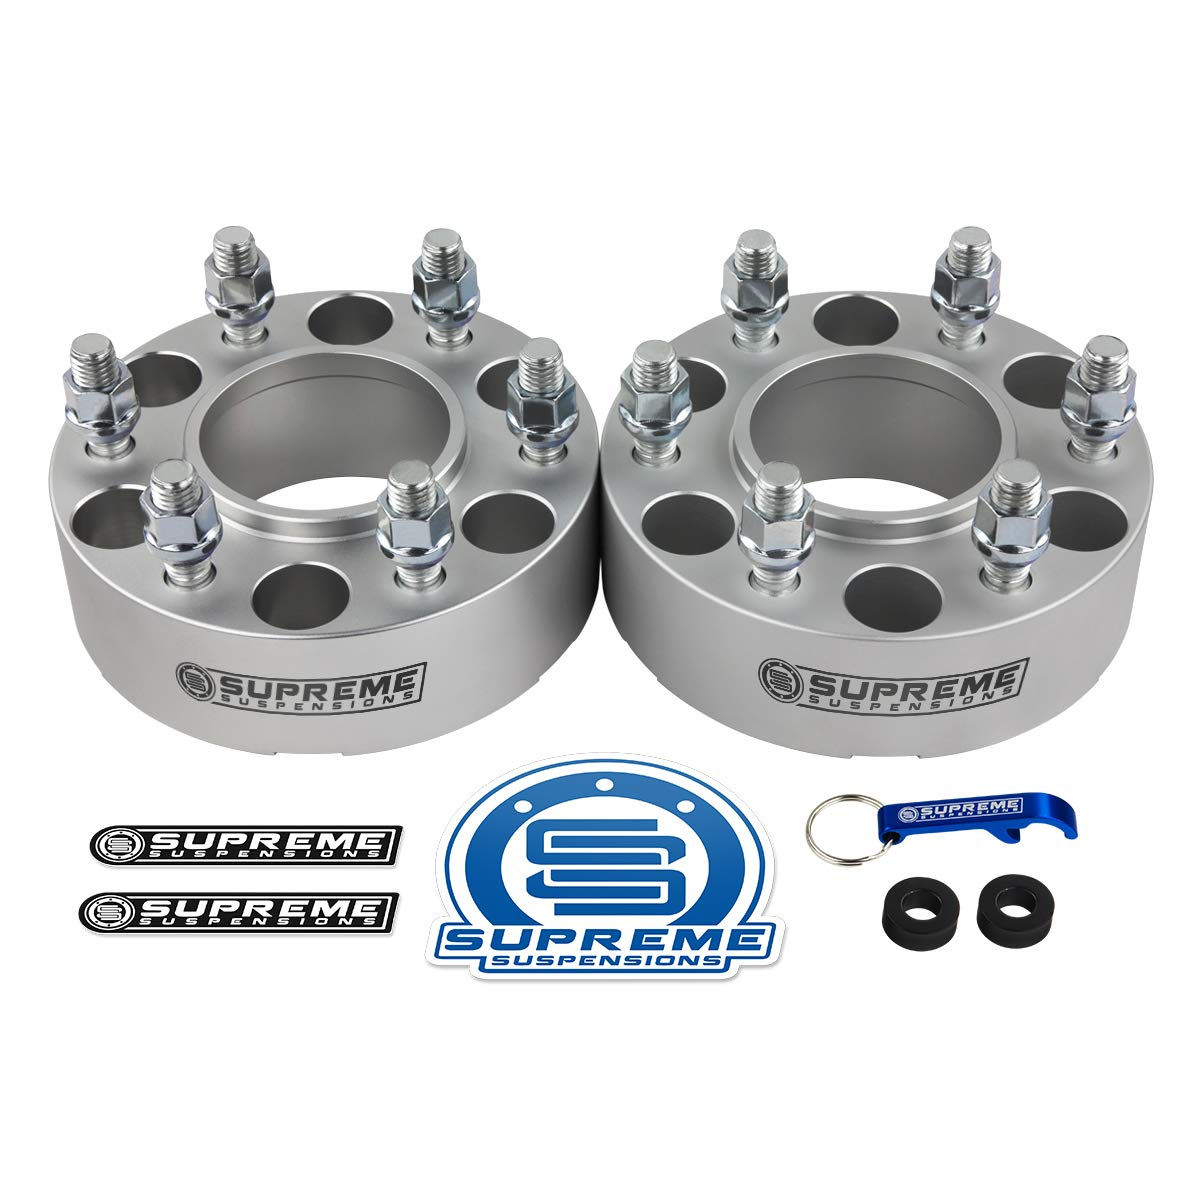 2pc Silver M14x2 Studs 2004-2014 Ford F150 1.5 Hub Centric Wheel Spacers 6x135mm with Lip Supreme Suspensions -